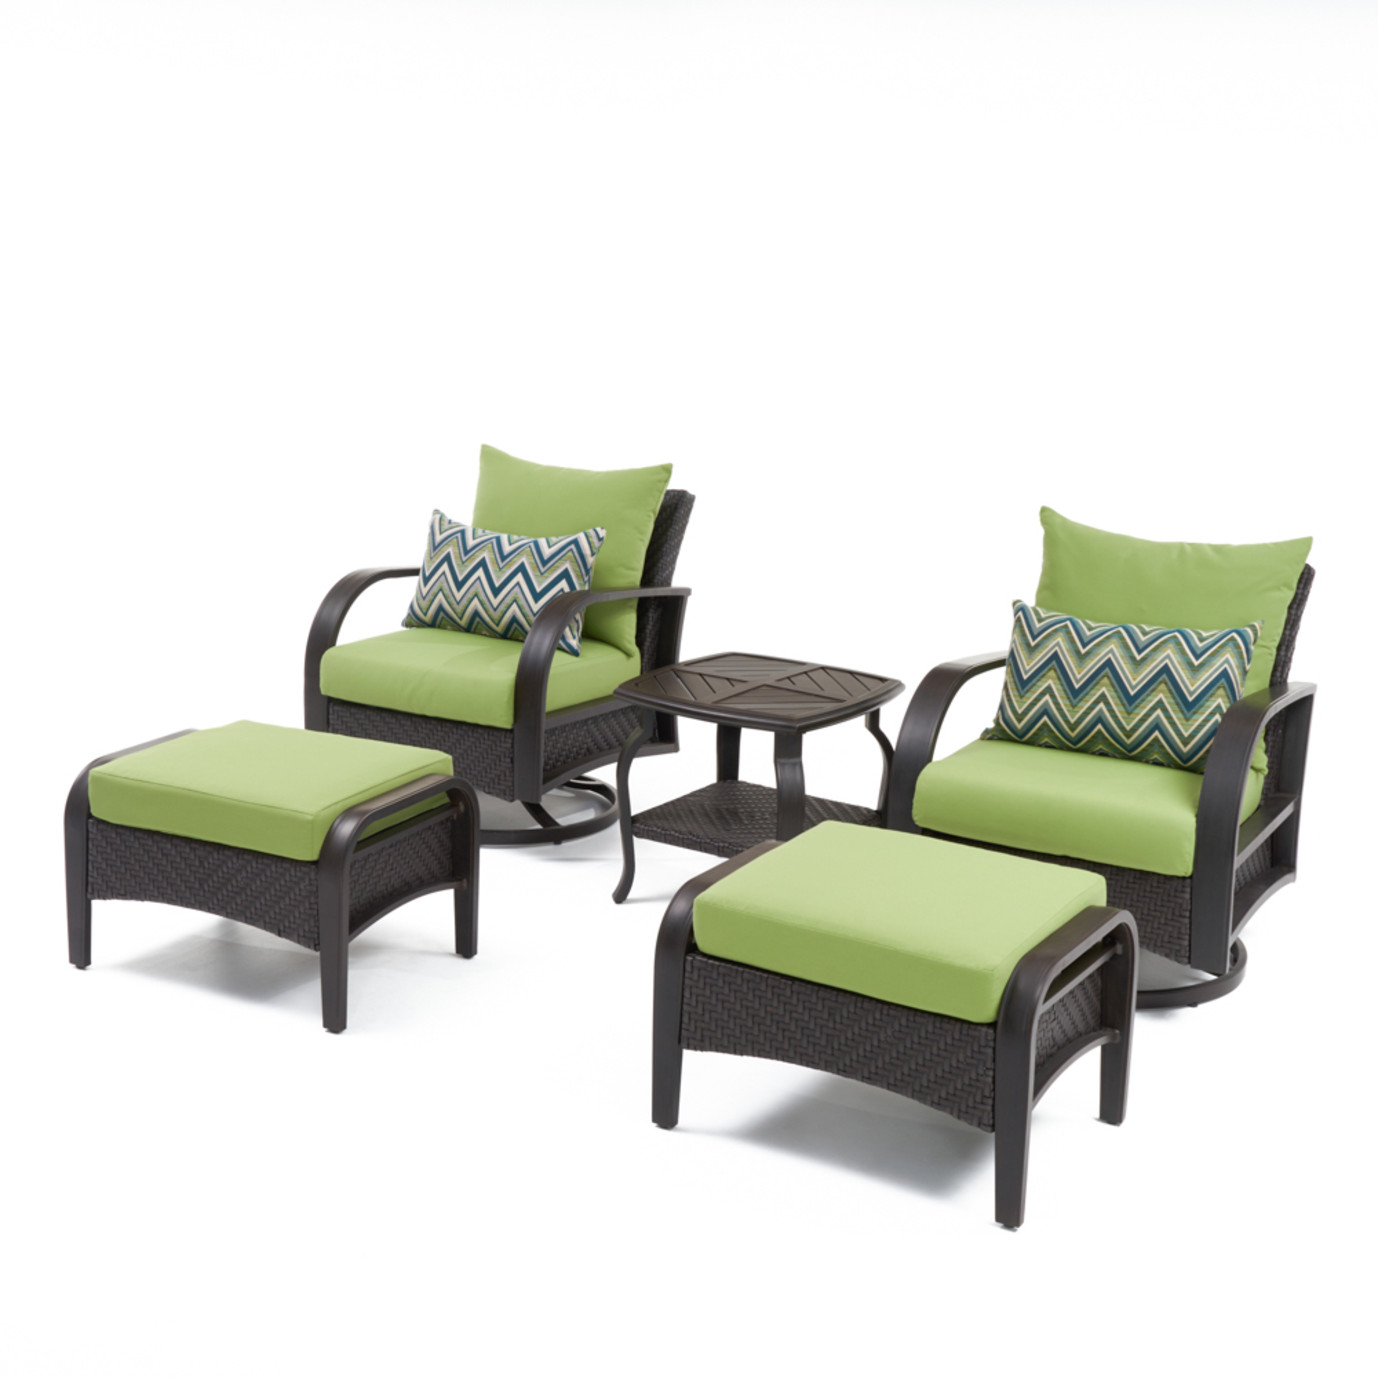 Barcelo™ 5pc Motion Club & Ottoman Set - Ginkgo Green